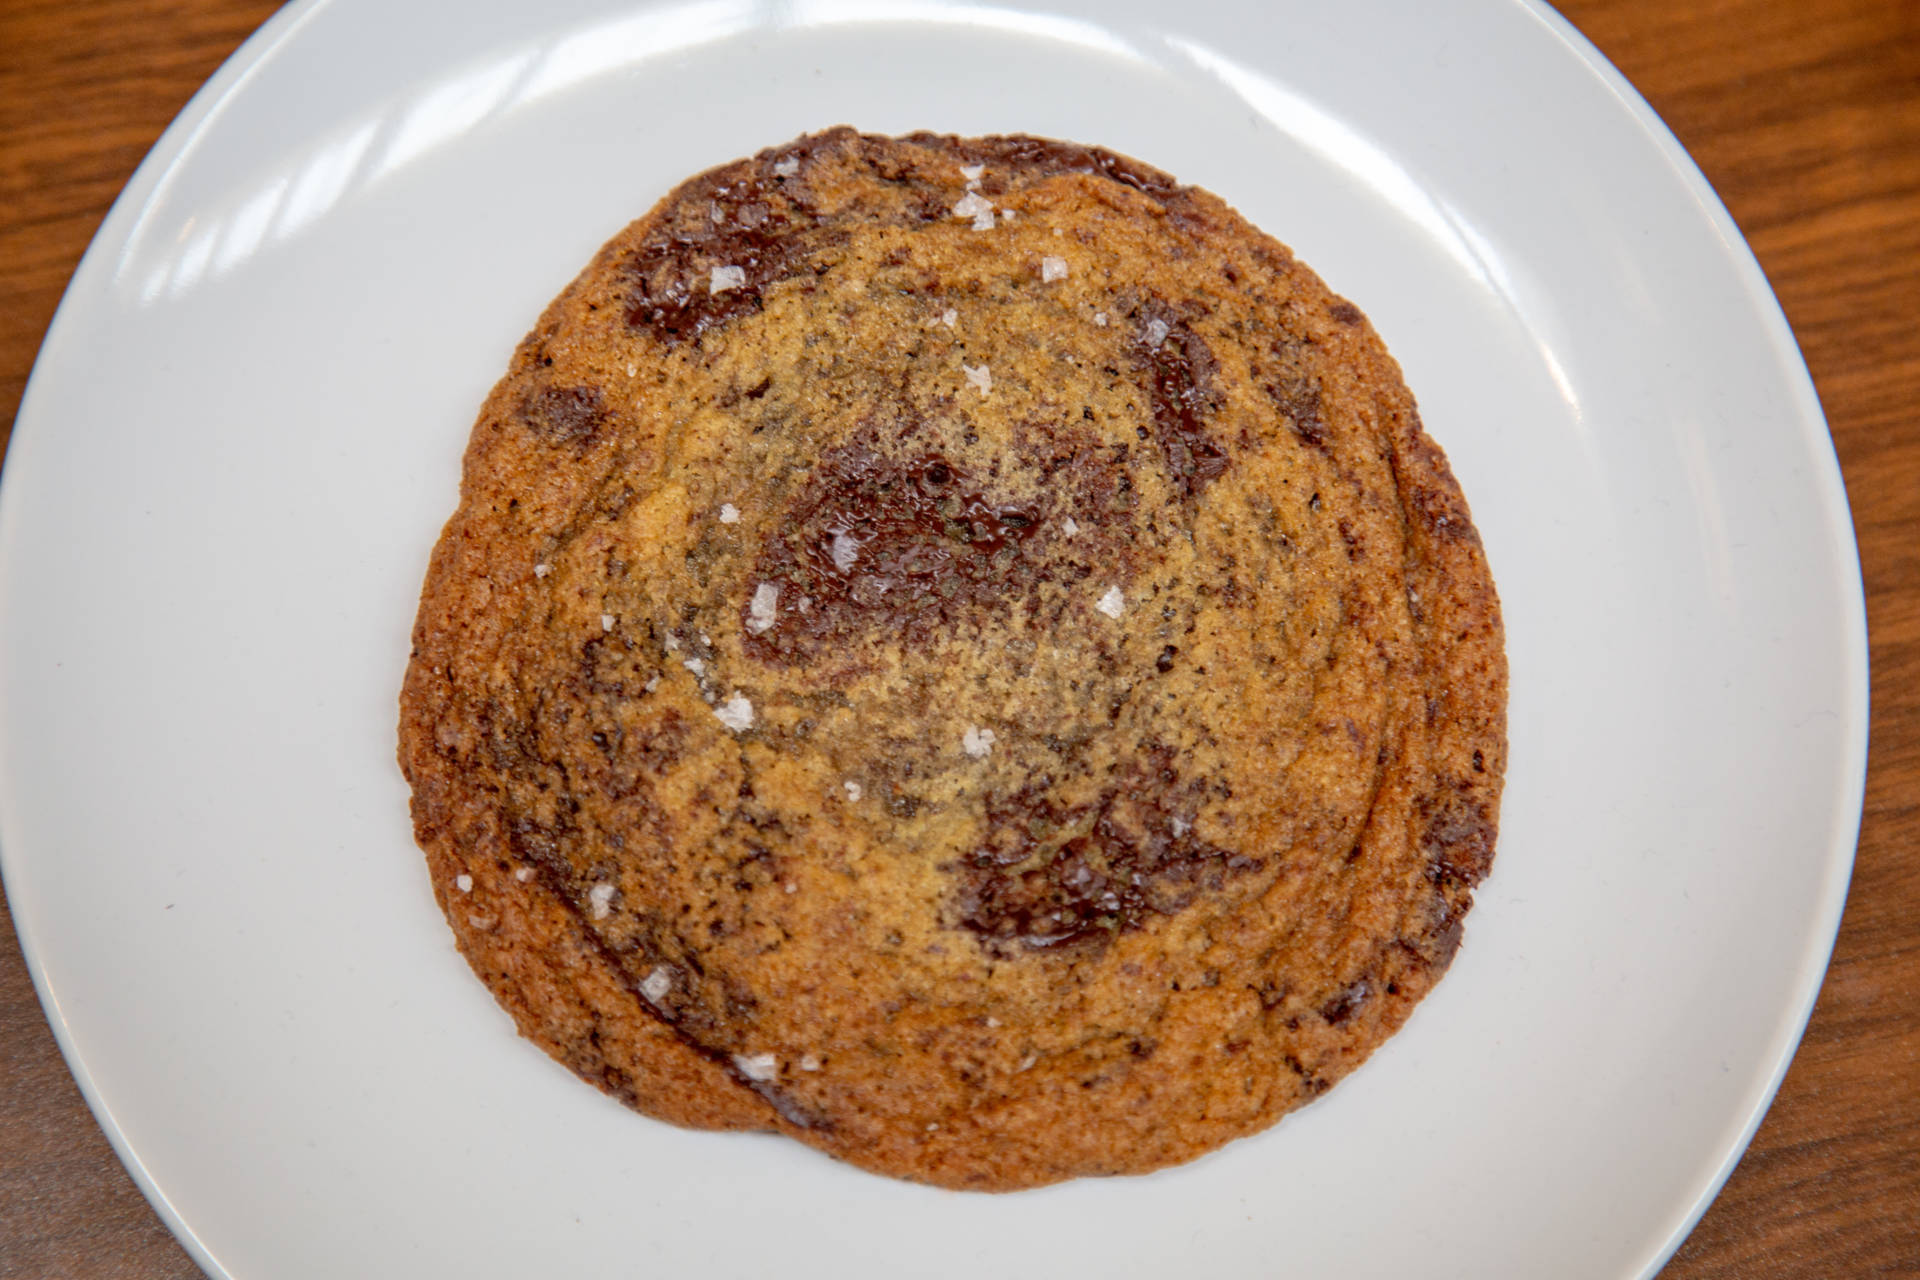 Tartine Manufactory's take on the chocolate chip cookie.